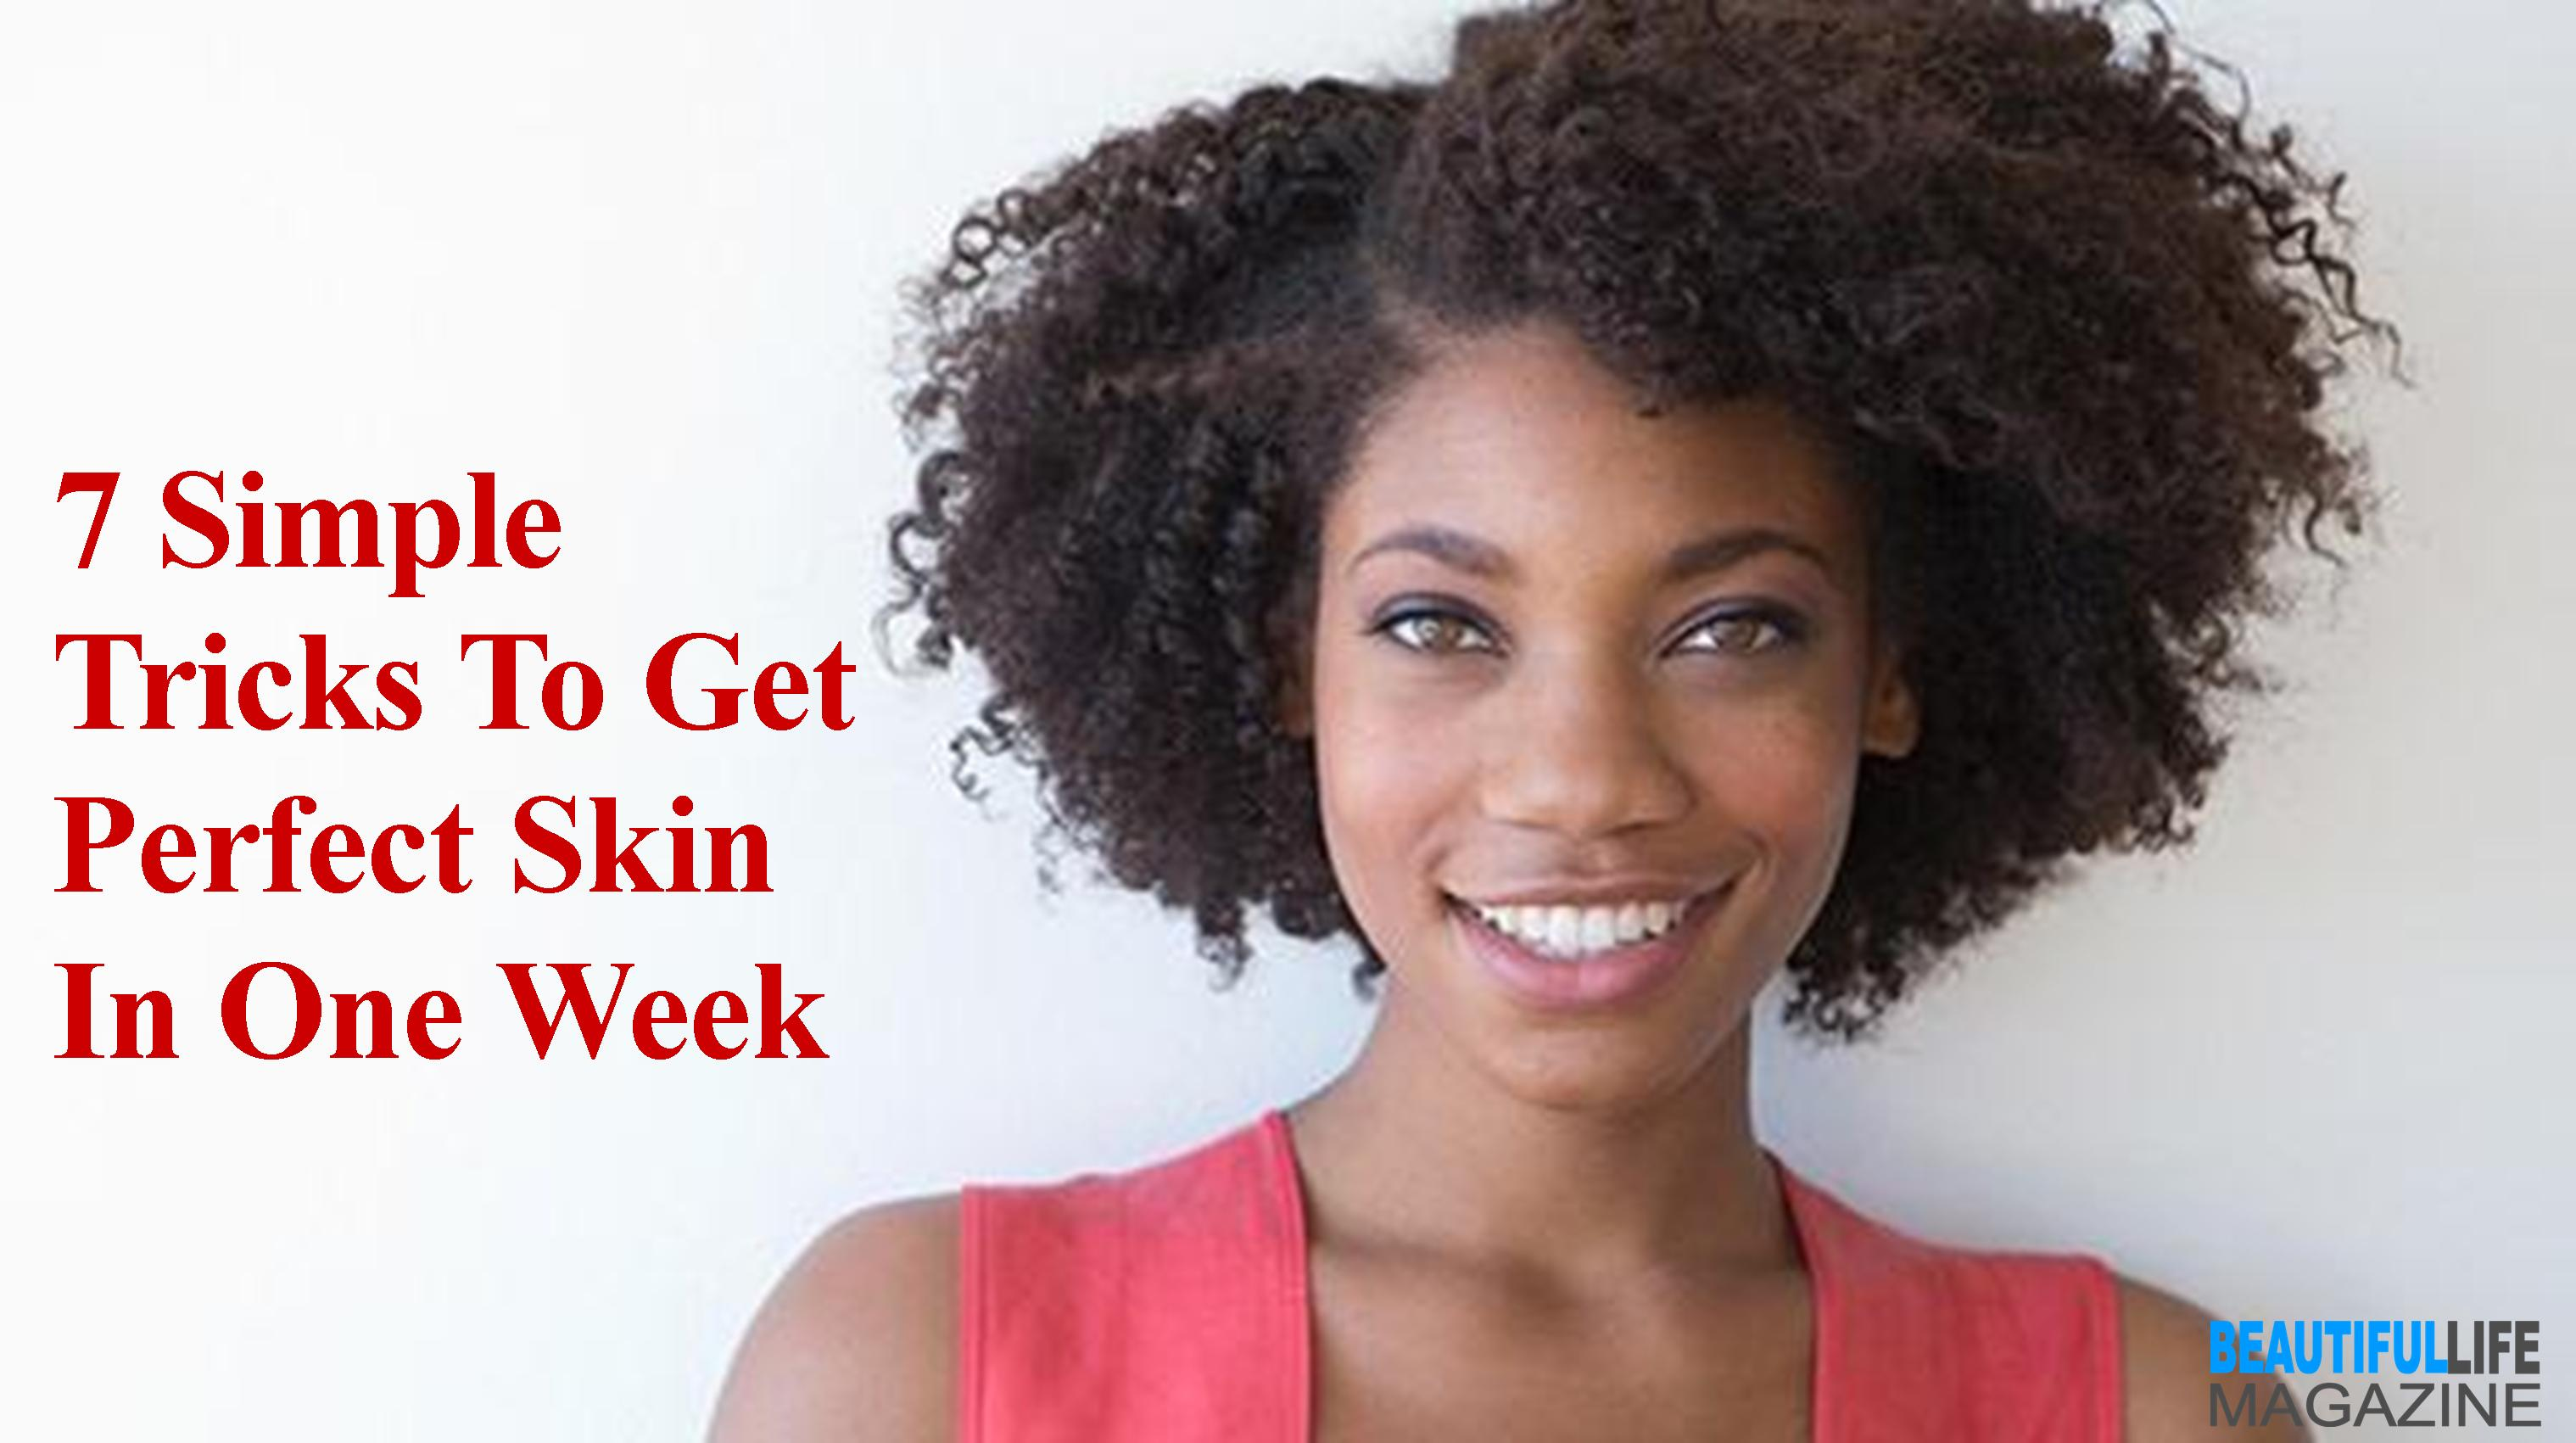 with this inside info next week you'll be glowing but also cursing yourself for not realizing how easy it actually was to get perfect skin sooner!